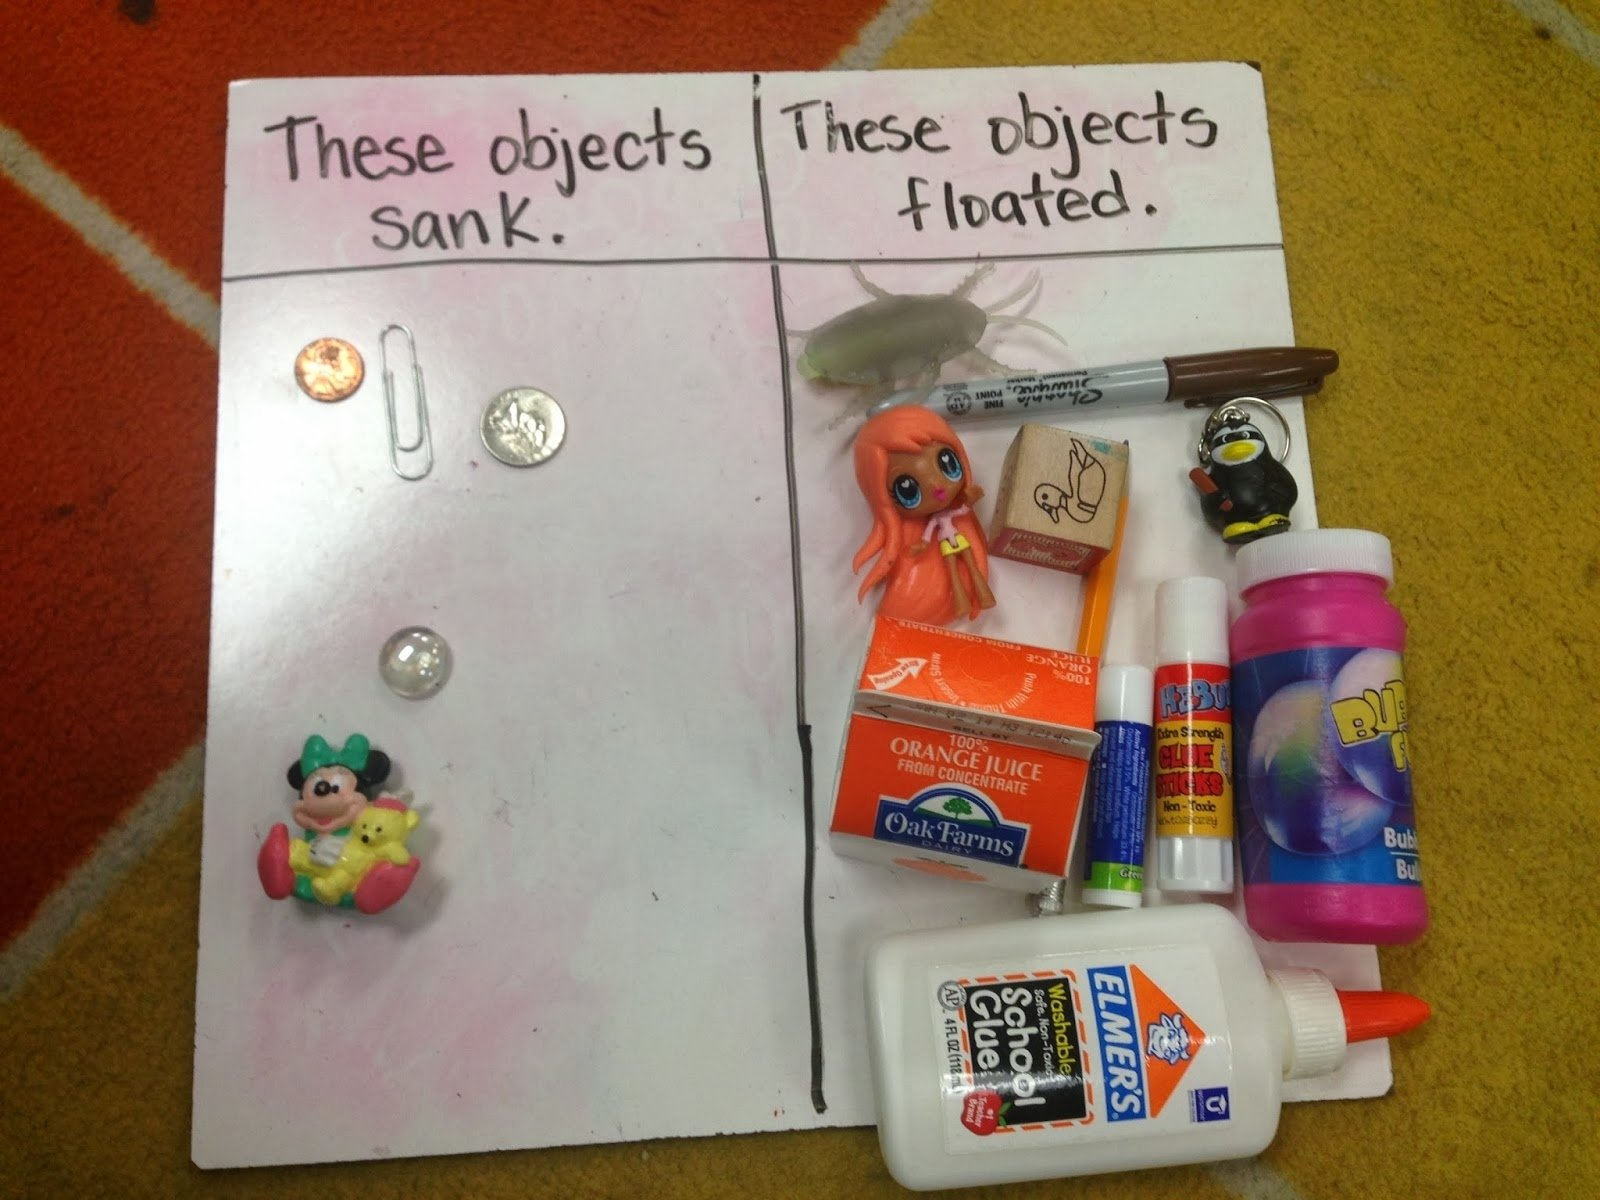 10 Fantastic Science Fair Projects Ideas For 5Th Graders keep teaching and planning fun at the science fair 11 2021